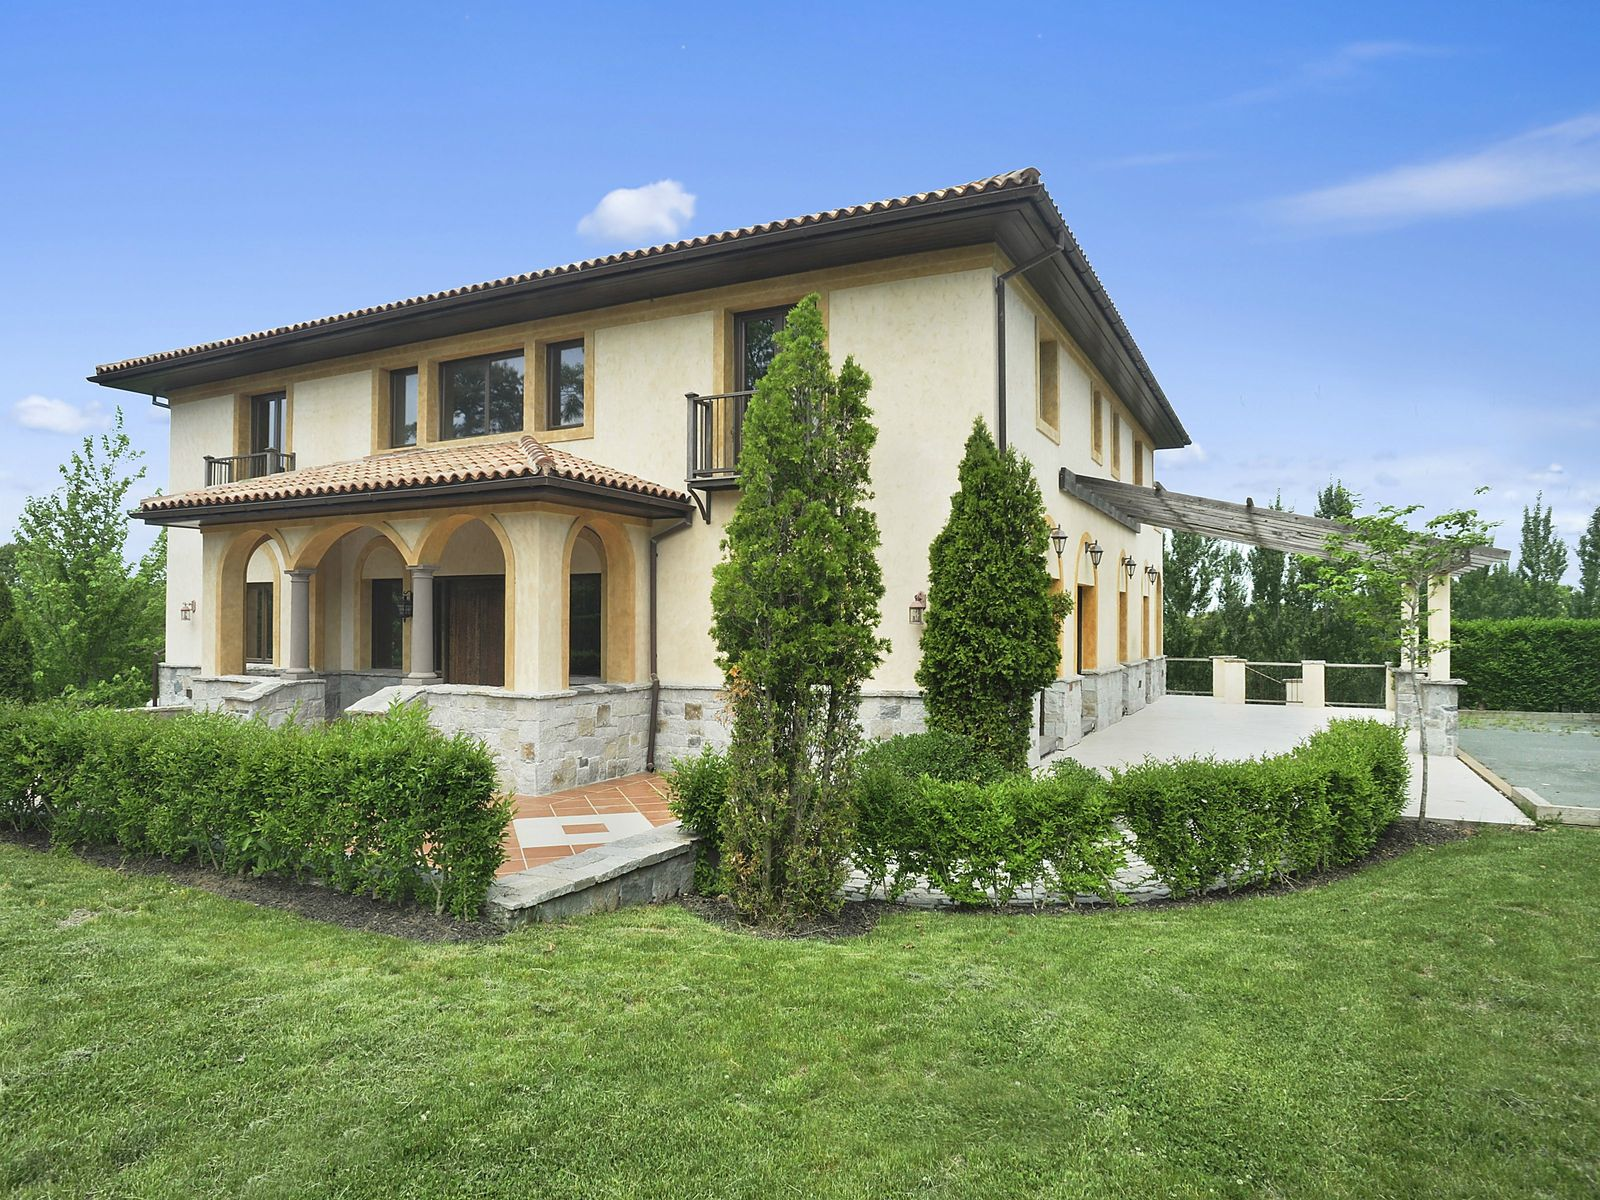 Glorious Tuscan Villa in Sag Harbor, Sag Harbor NY Single Family Home - Hamptons Real Estate